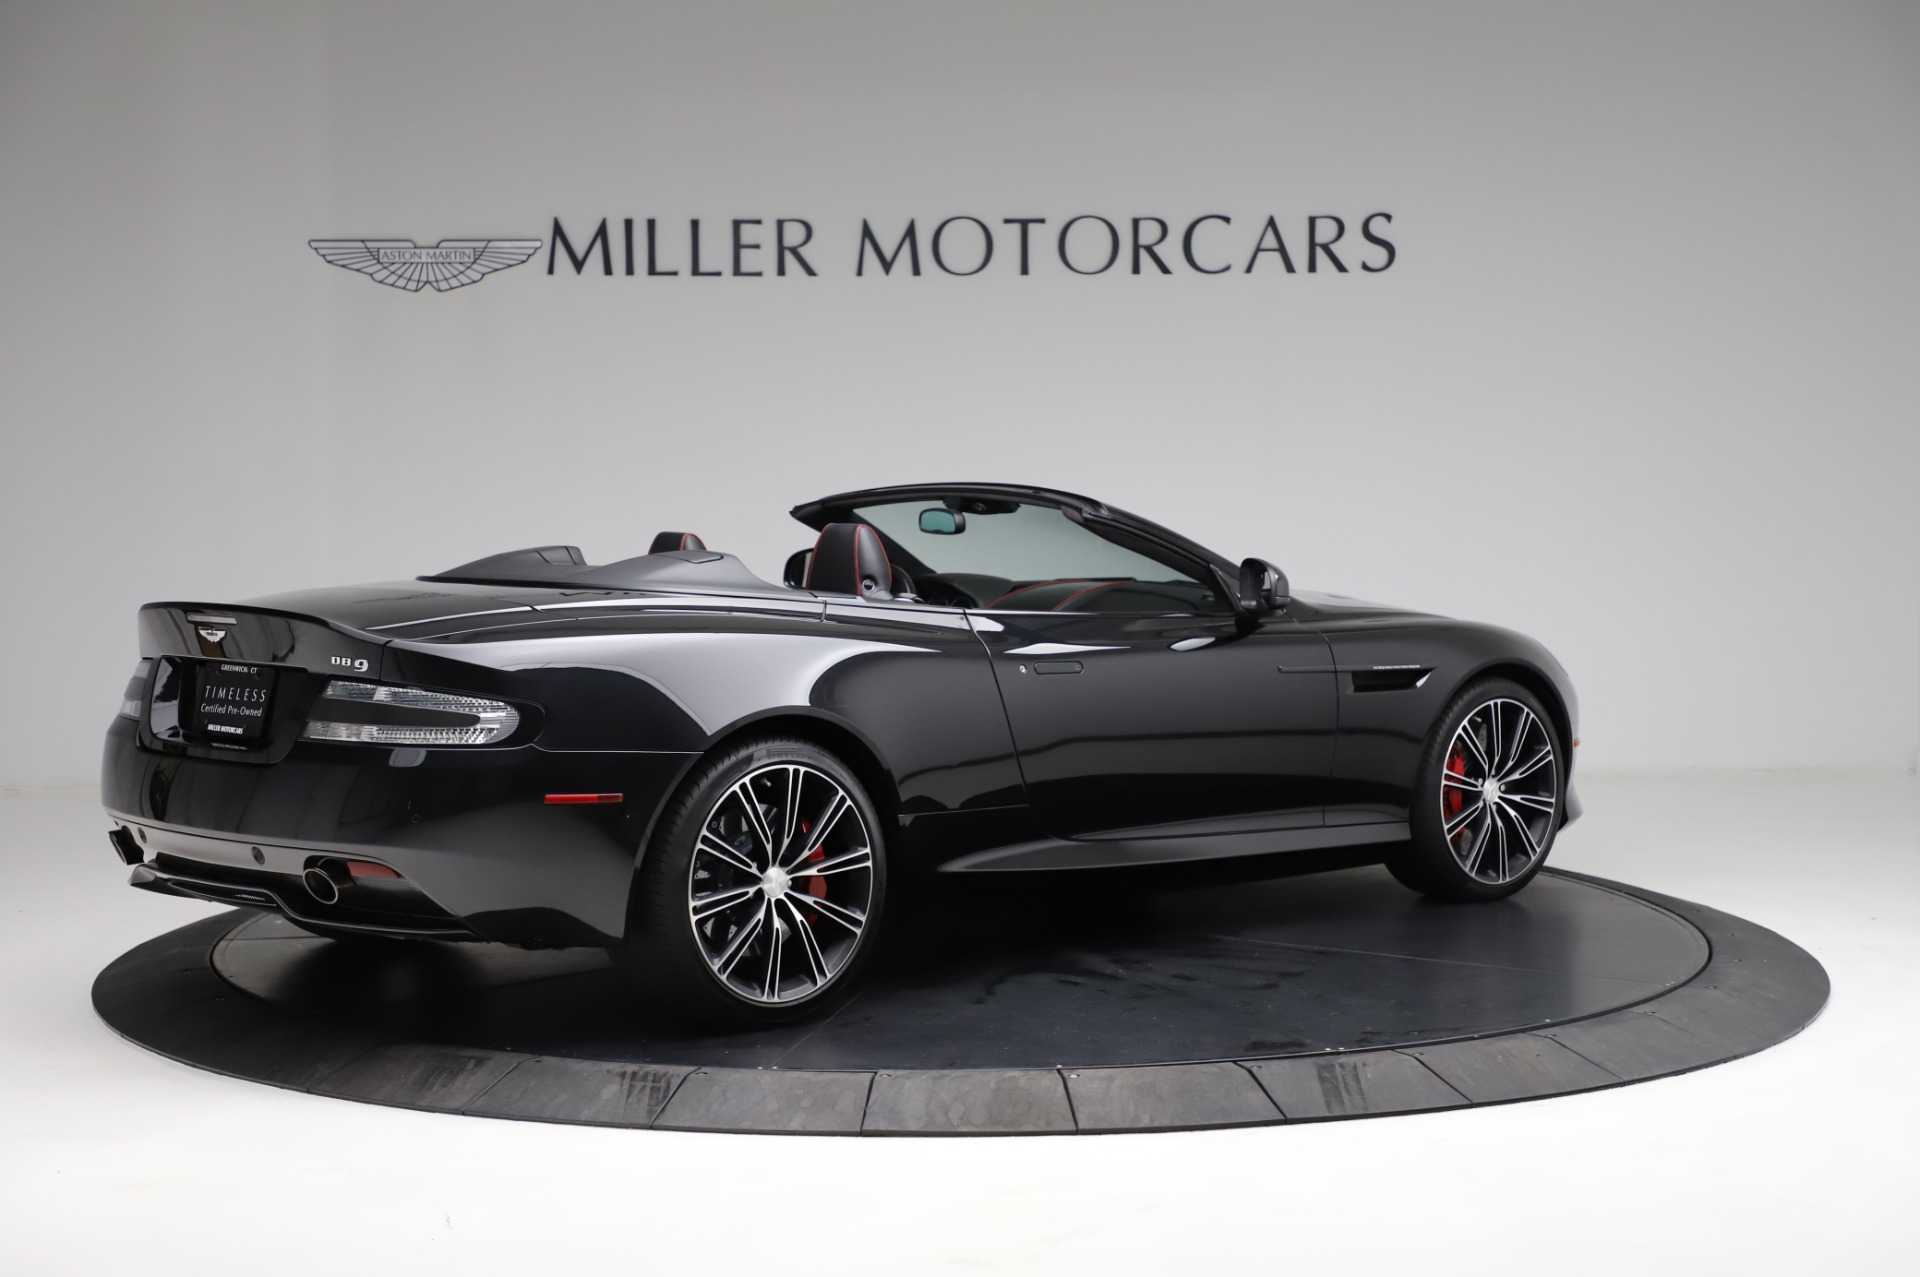 Used 2015 Aston Martin DB9 Convertible For Sale In Westport, CT 1919_p7